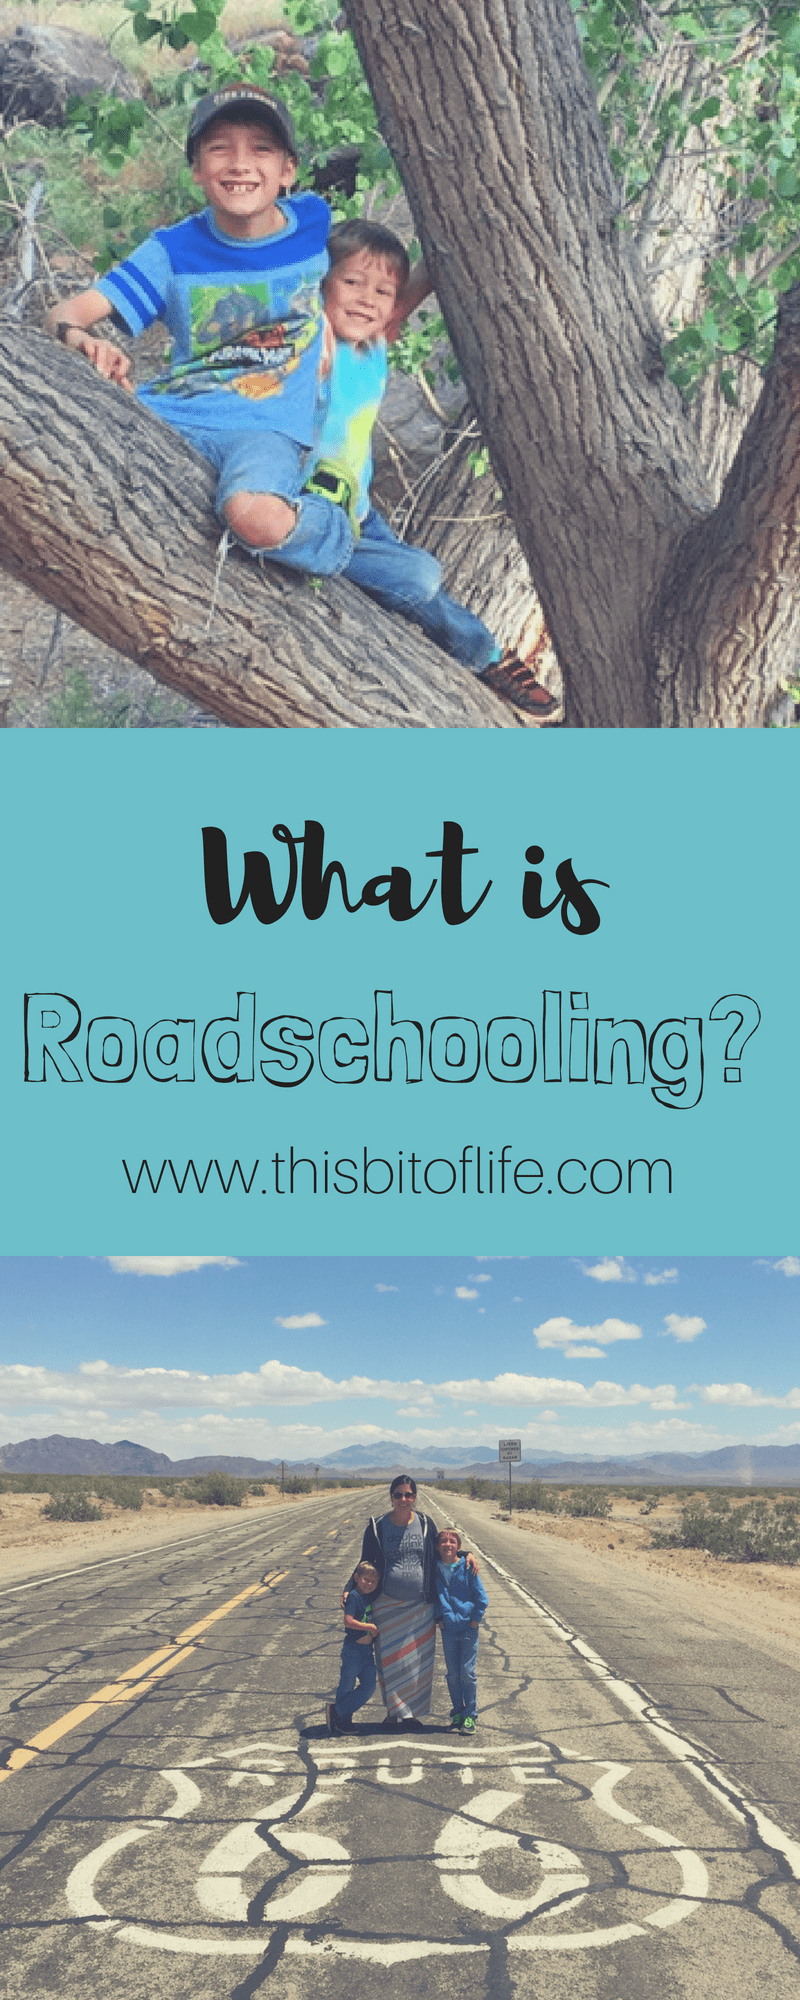 What is roadschooling? Real life learning in the real world for homeschoolers #roadschooling #homeschool #travel